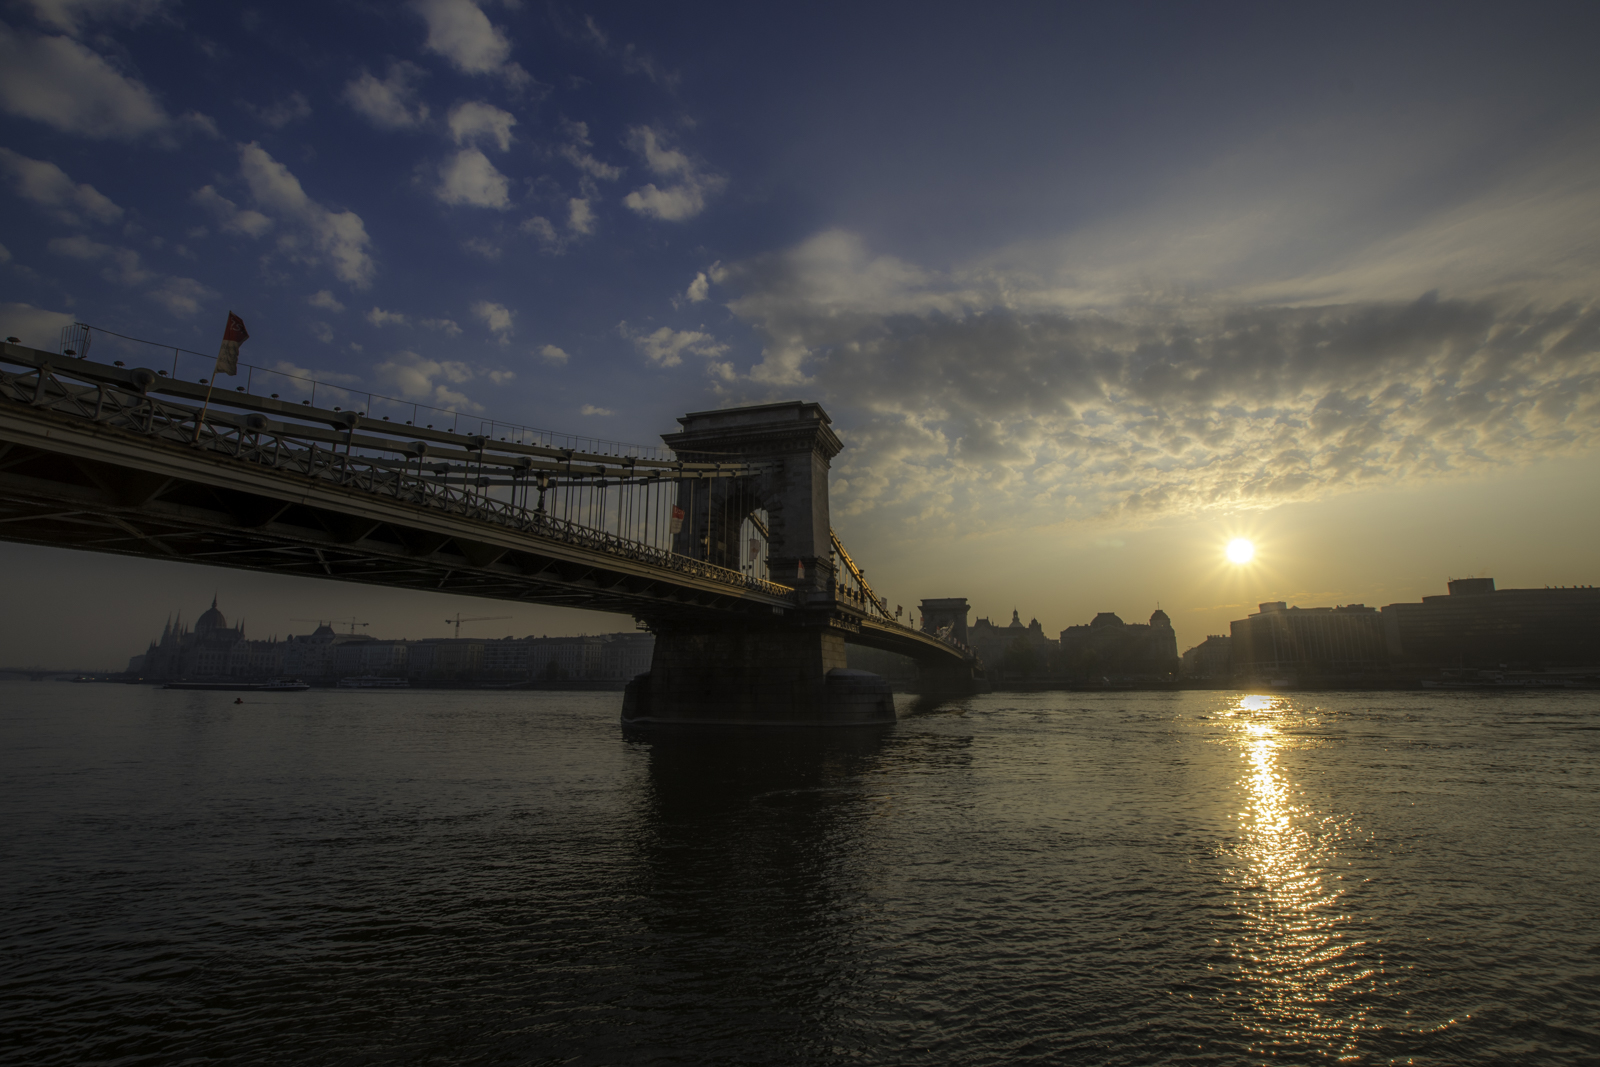 Just after the sunrise, walking along the Danube.